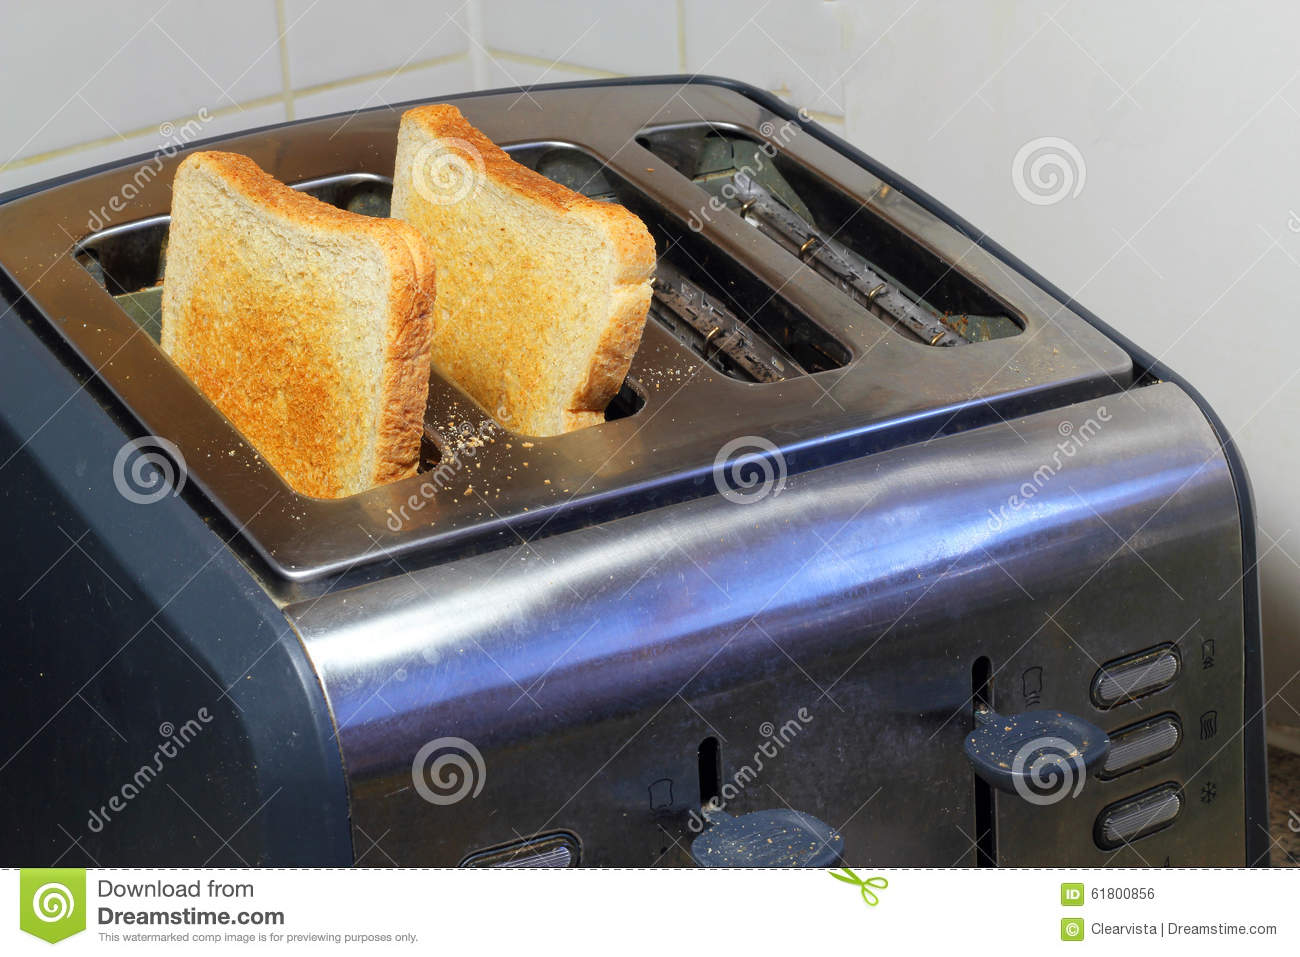 Inside Of A Toaster ~ Toast inside a toaster just popped up stock photo image